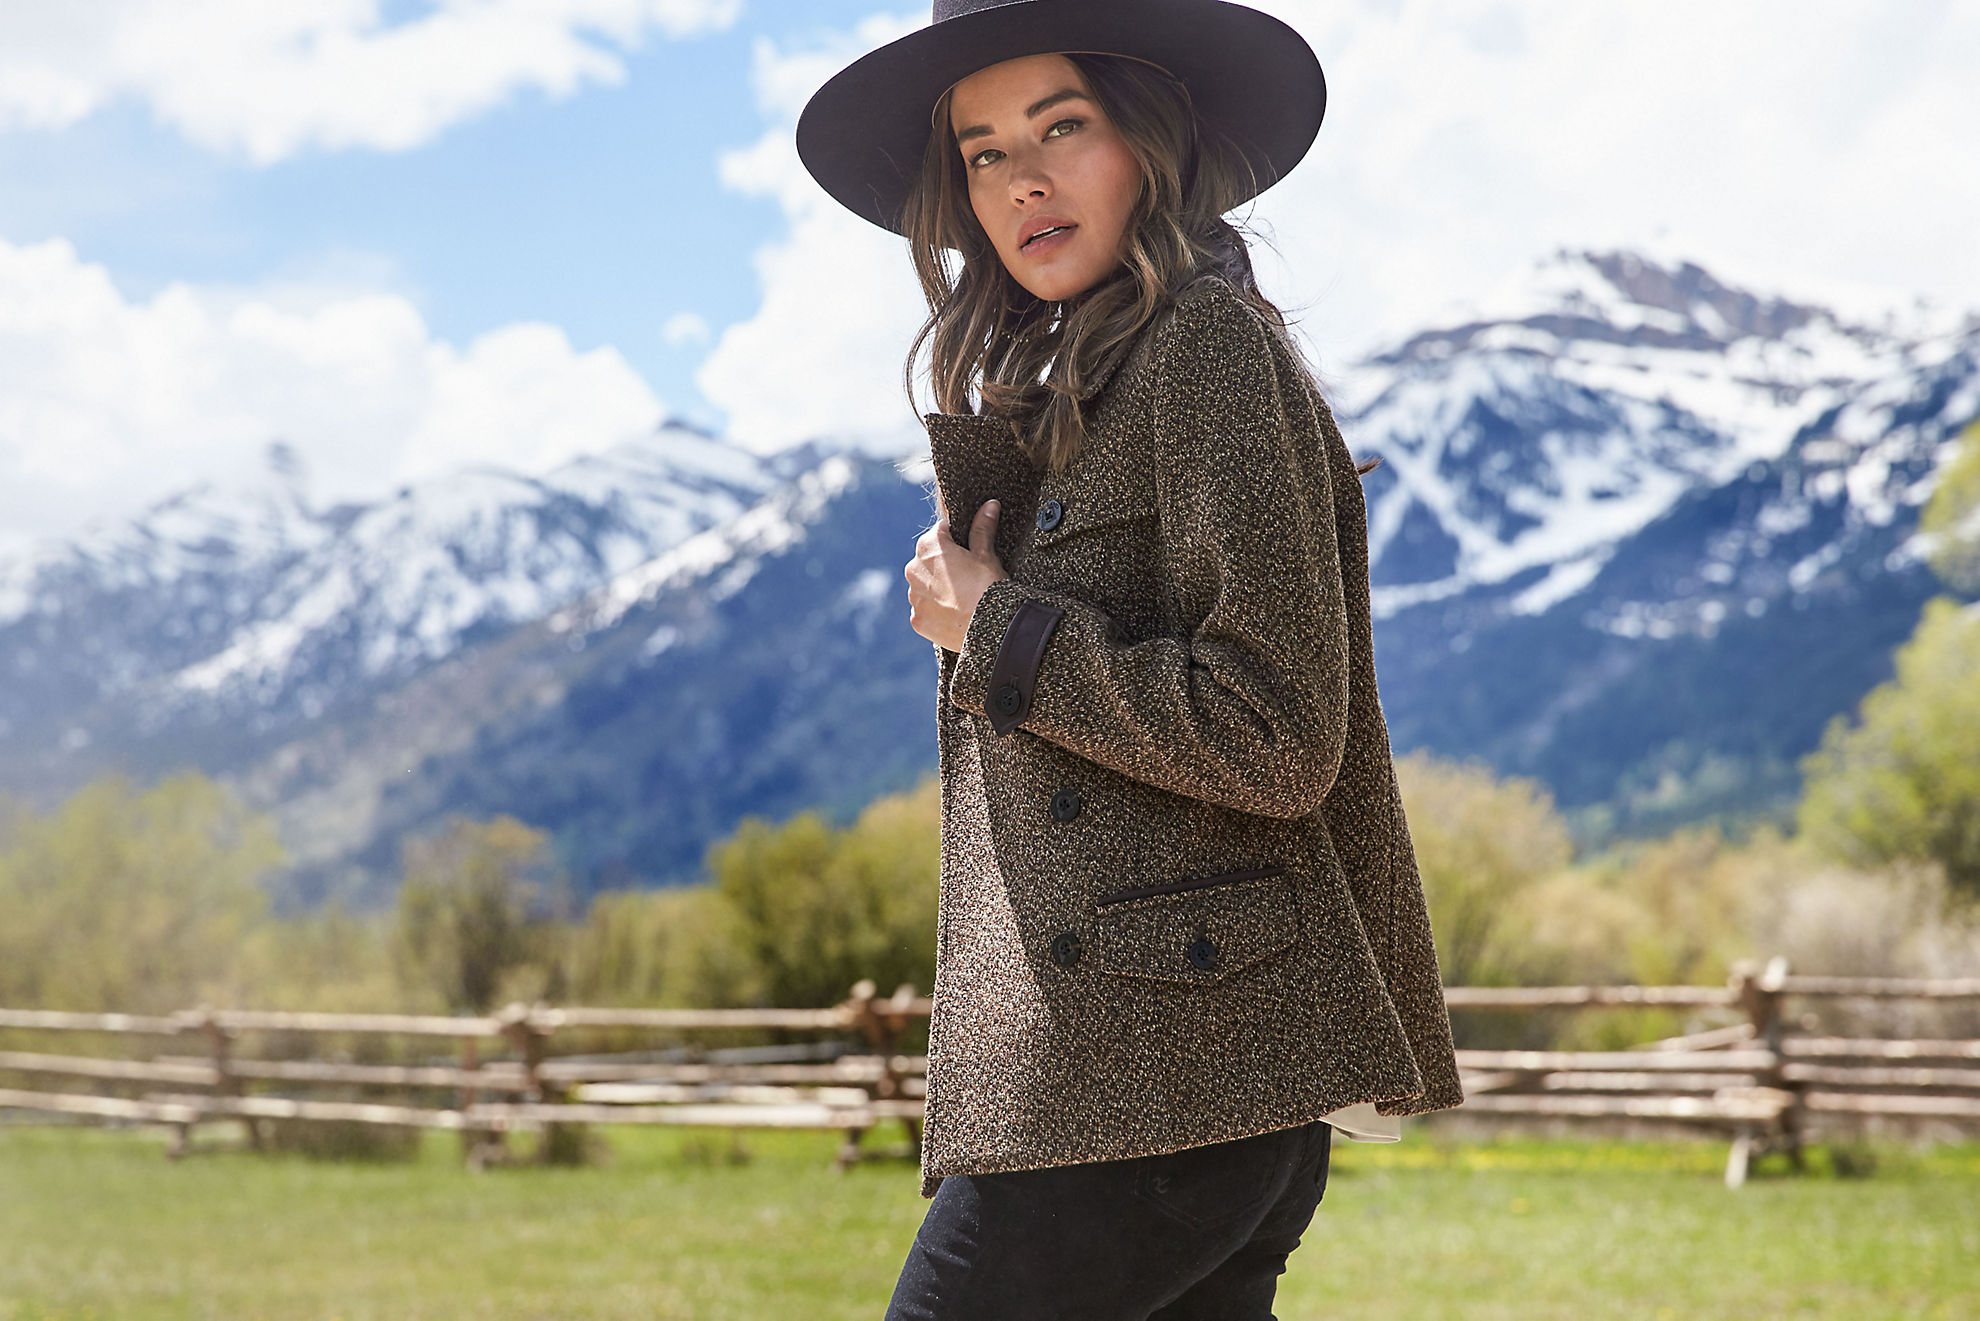 Ellie Italian Wool Pea Coat with Leather Trim